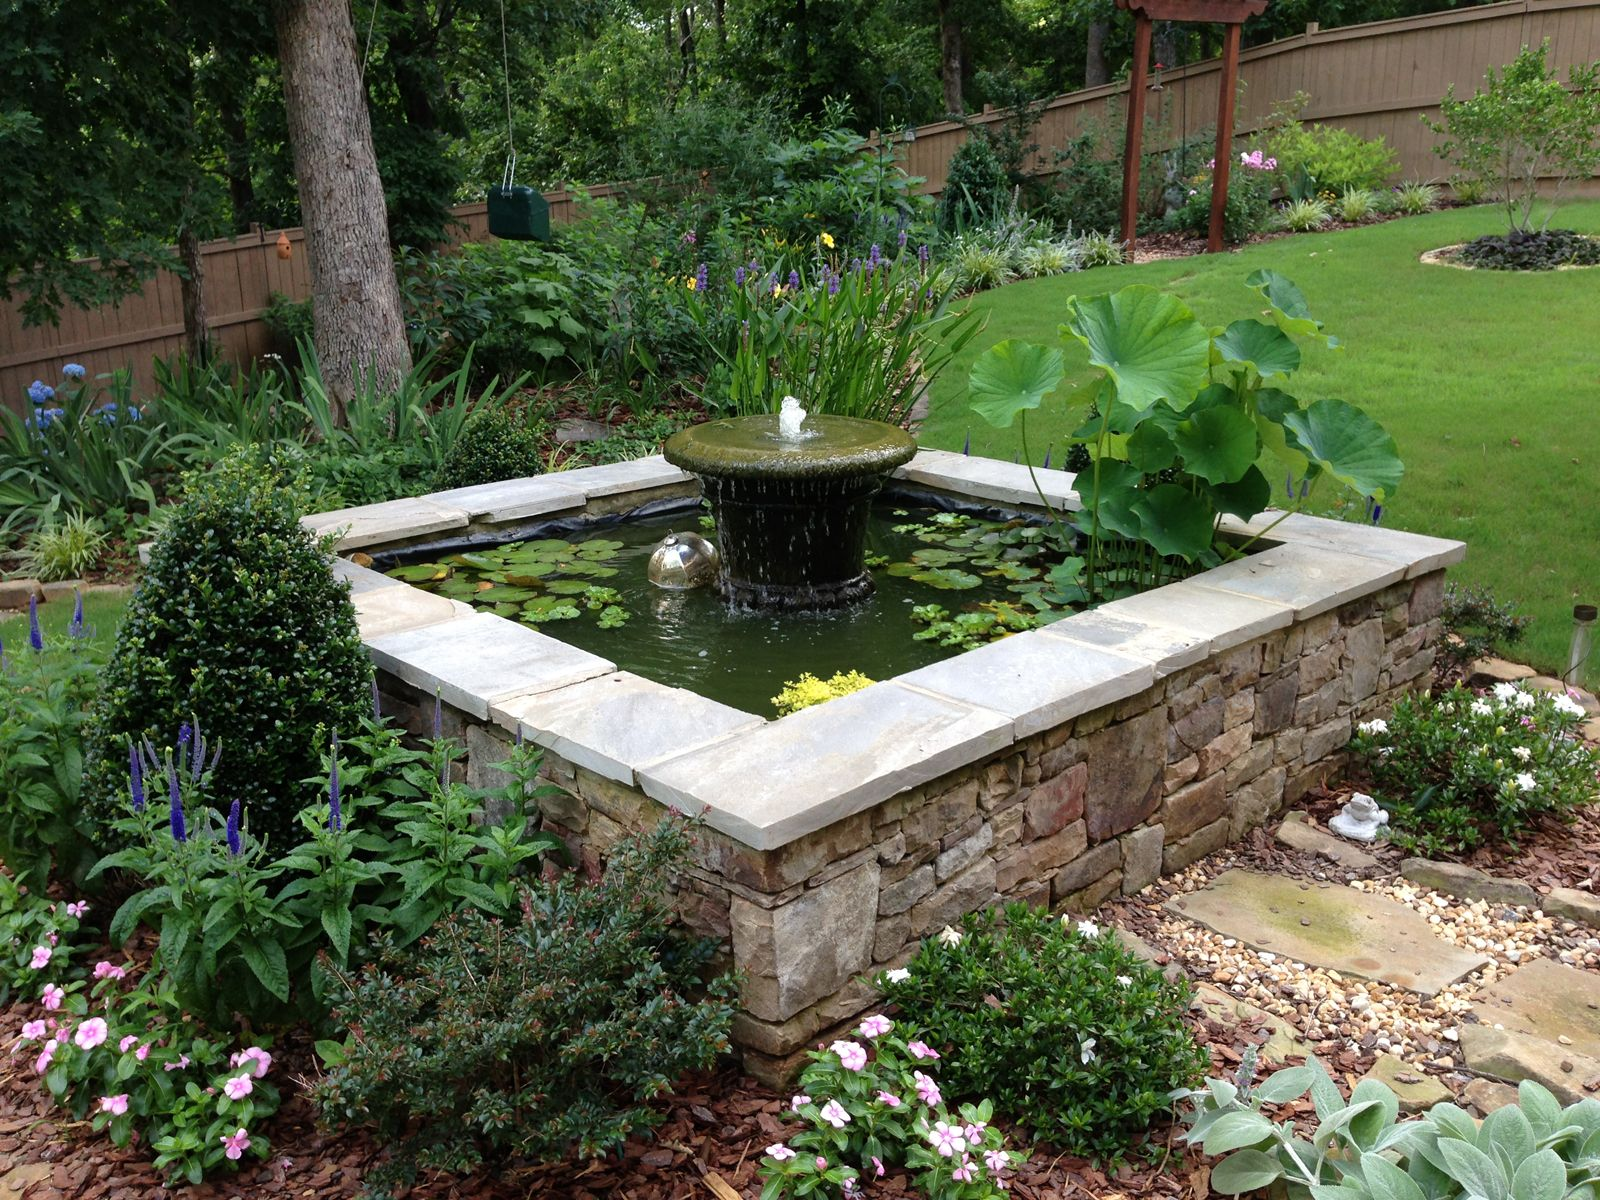 Square water pool carol bill 39 s garden in georgia for Outdoor goldfish pond ideas